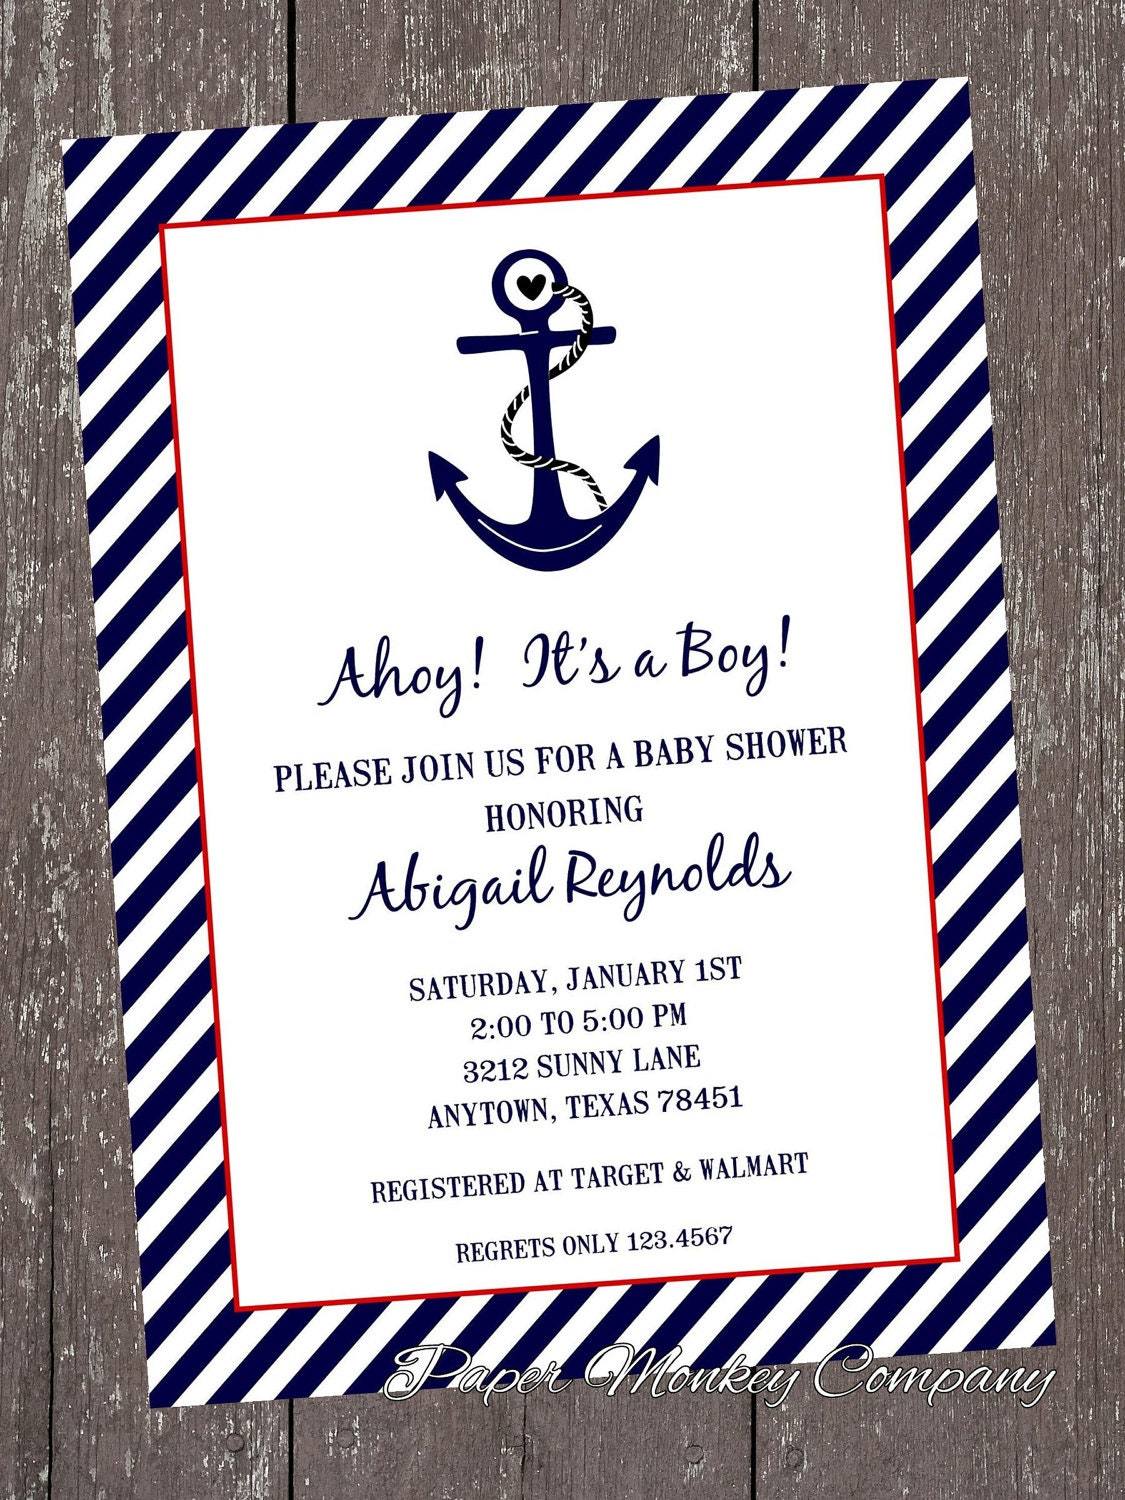 Nautical Baby Shower Invitations 1.00 each with envelope